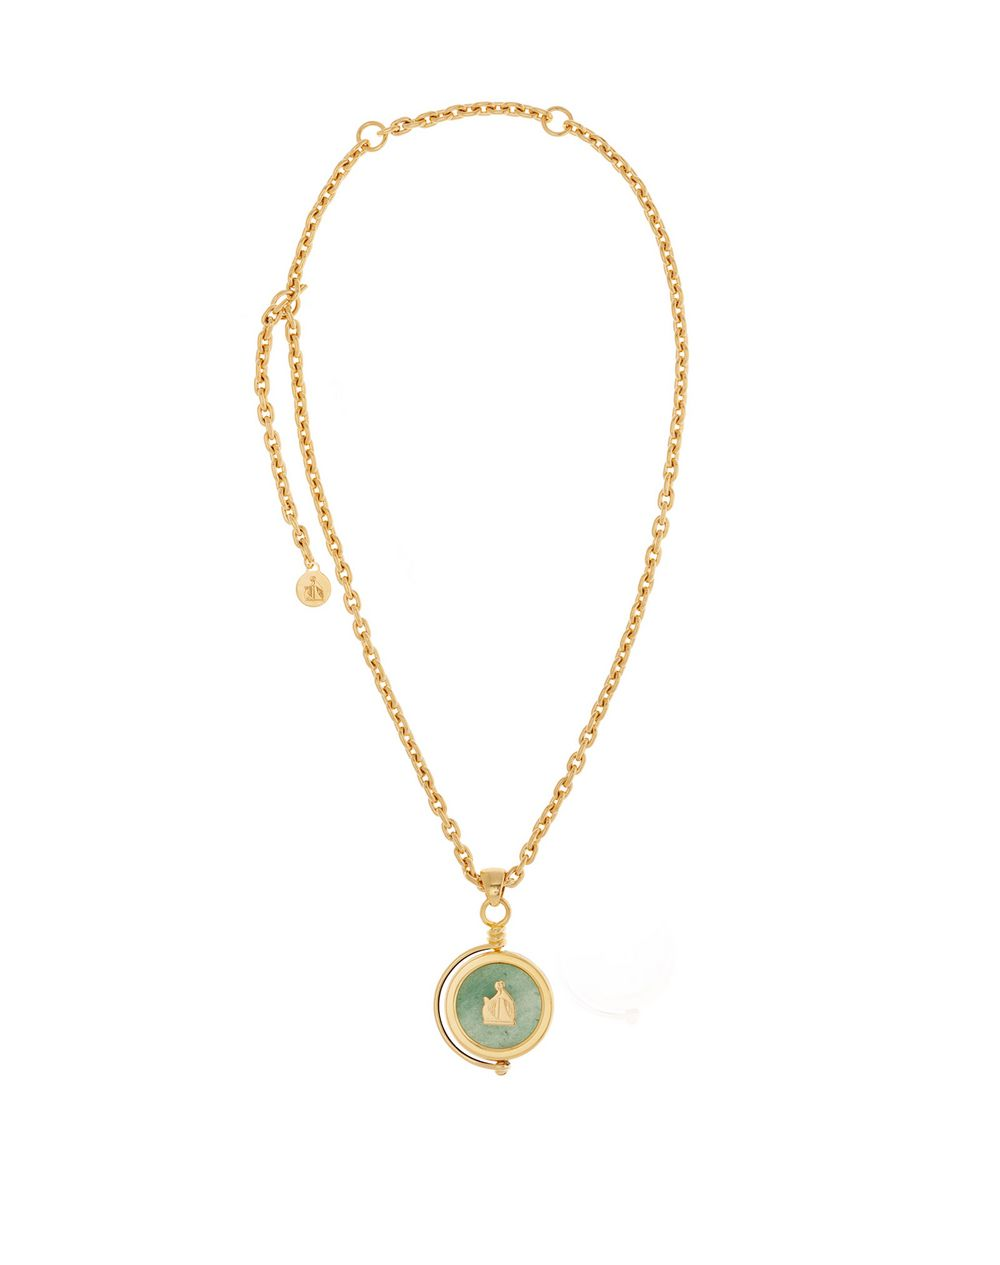 SEAL NECKLACE WITH CANADIAN JADE - Lanvin